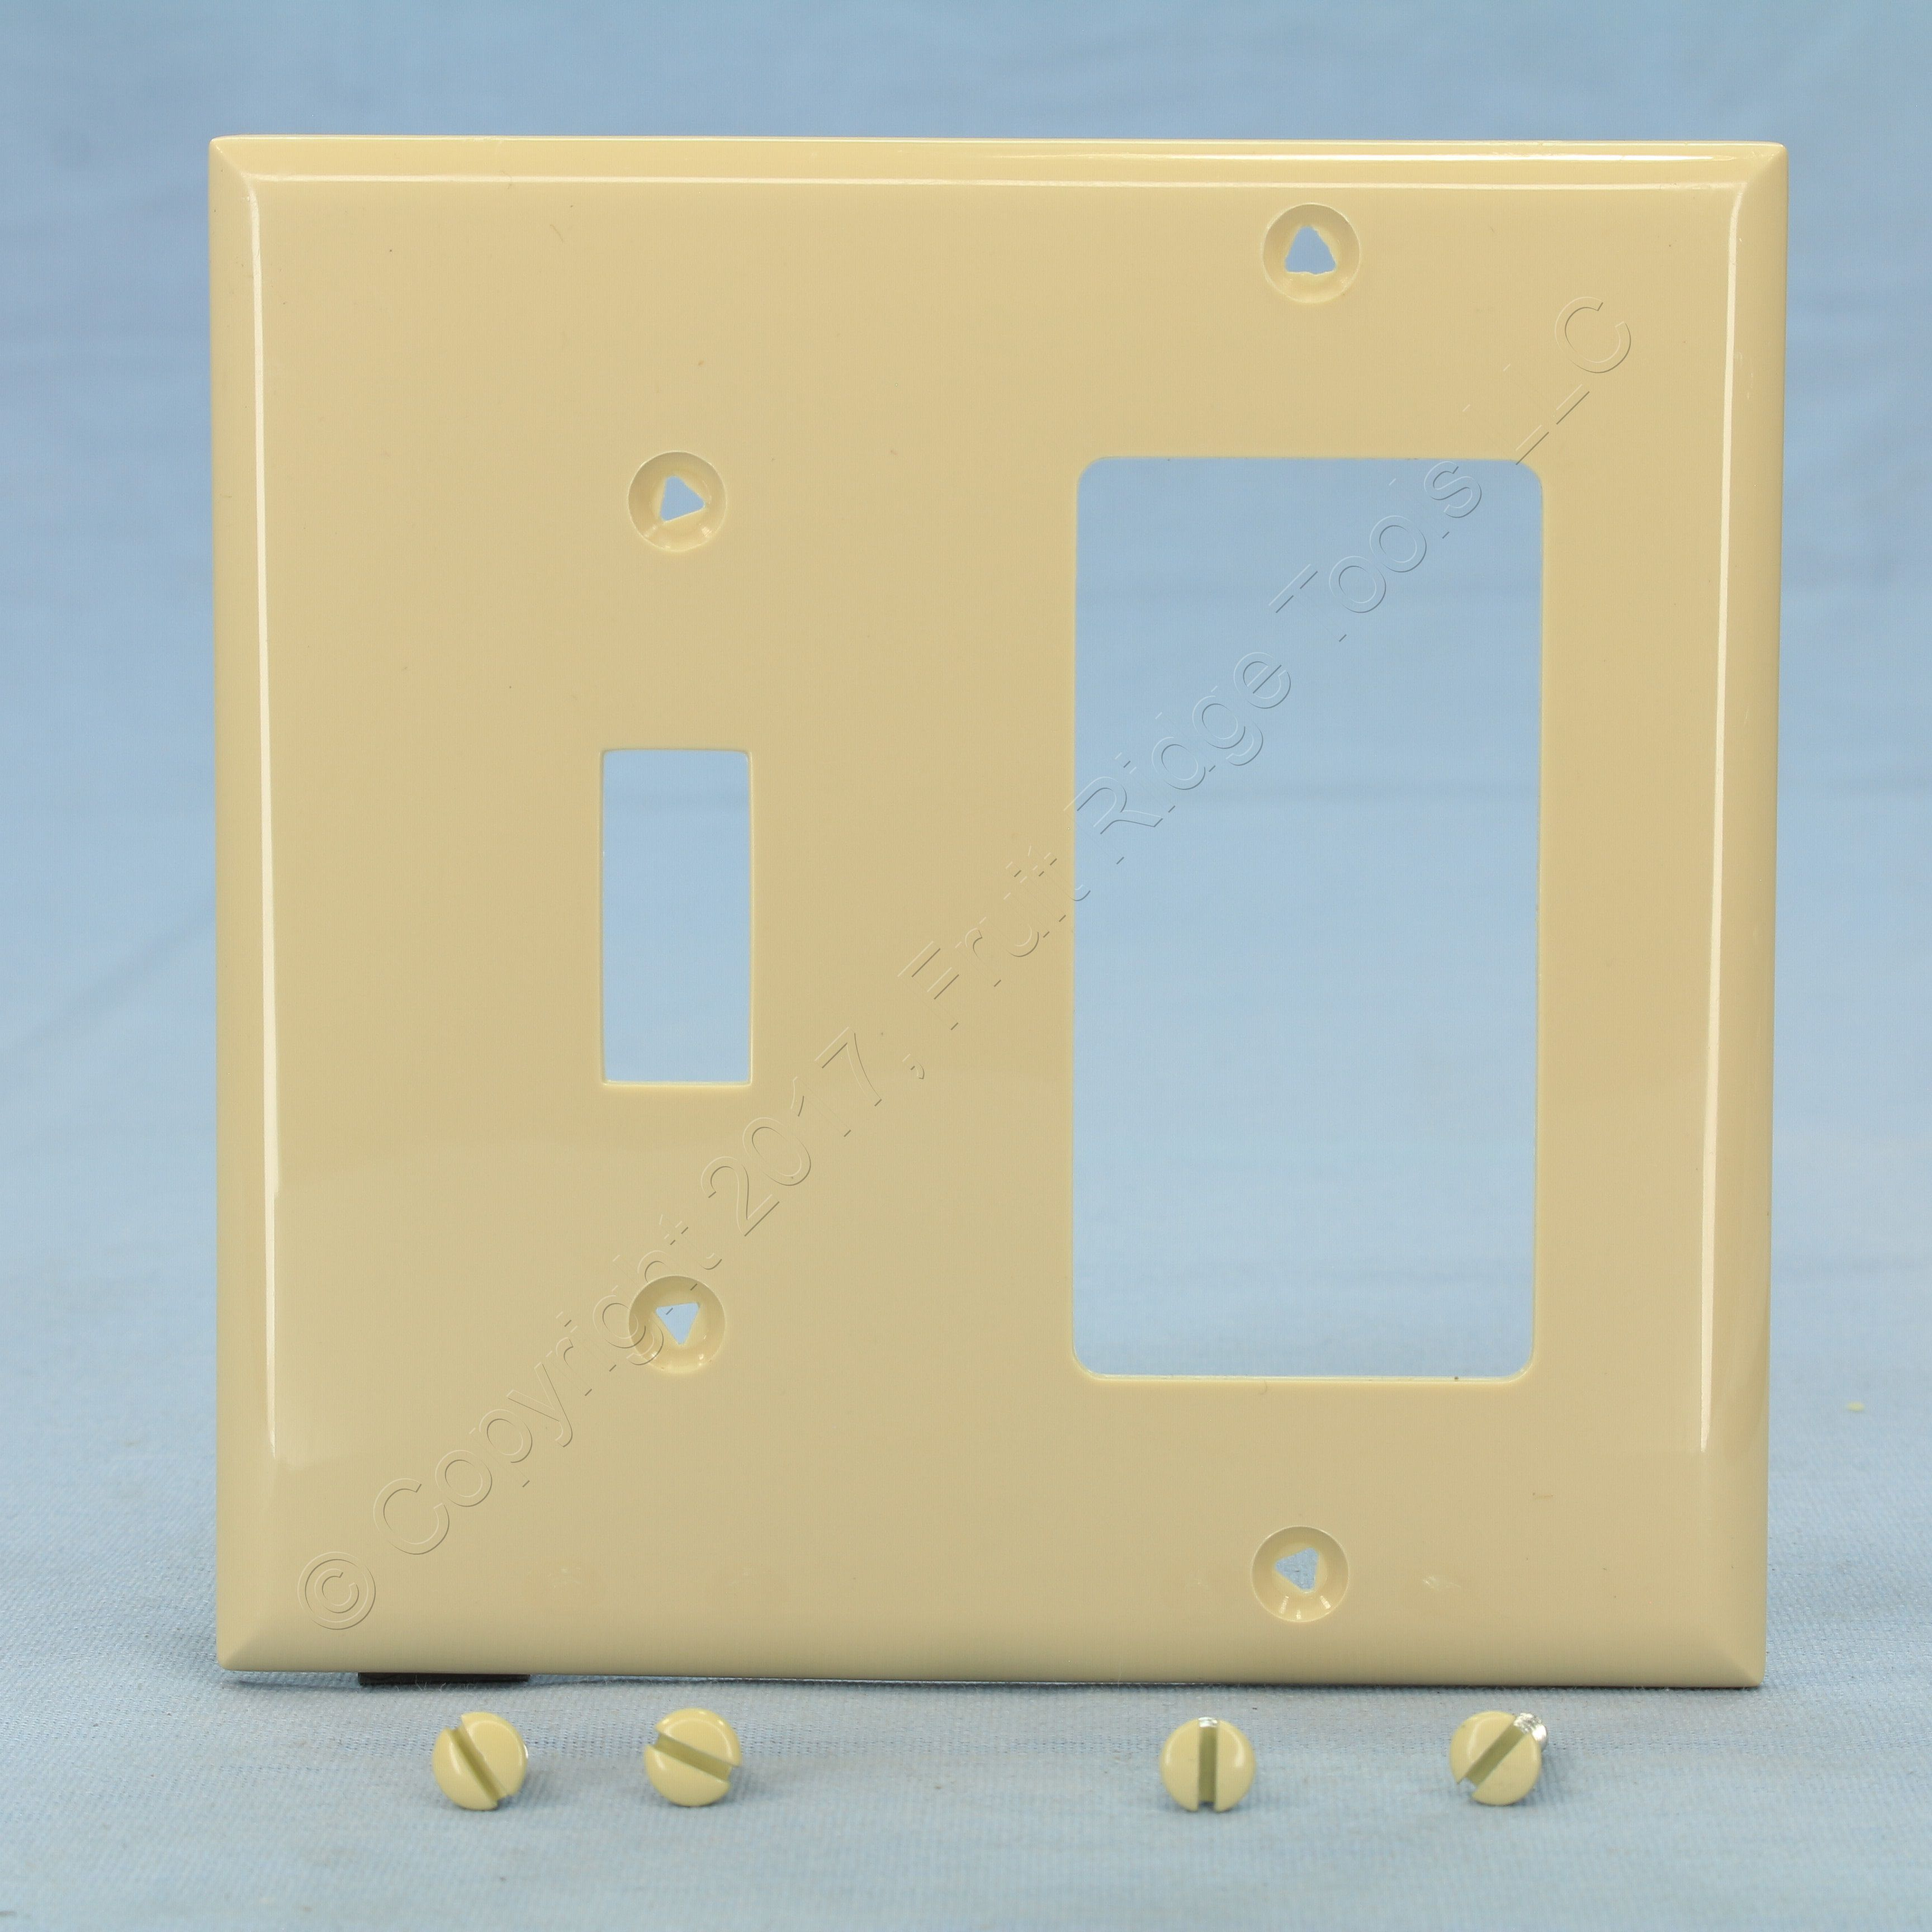 Cooper Ivory Unbreakable Switch Plate Decorator GFCI GFI Cover ...